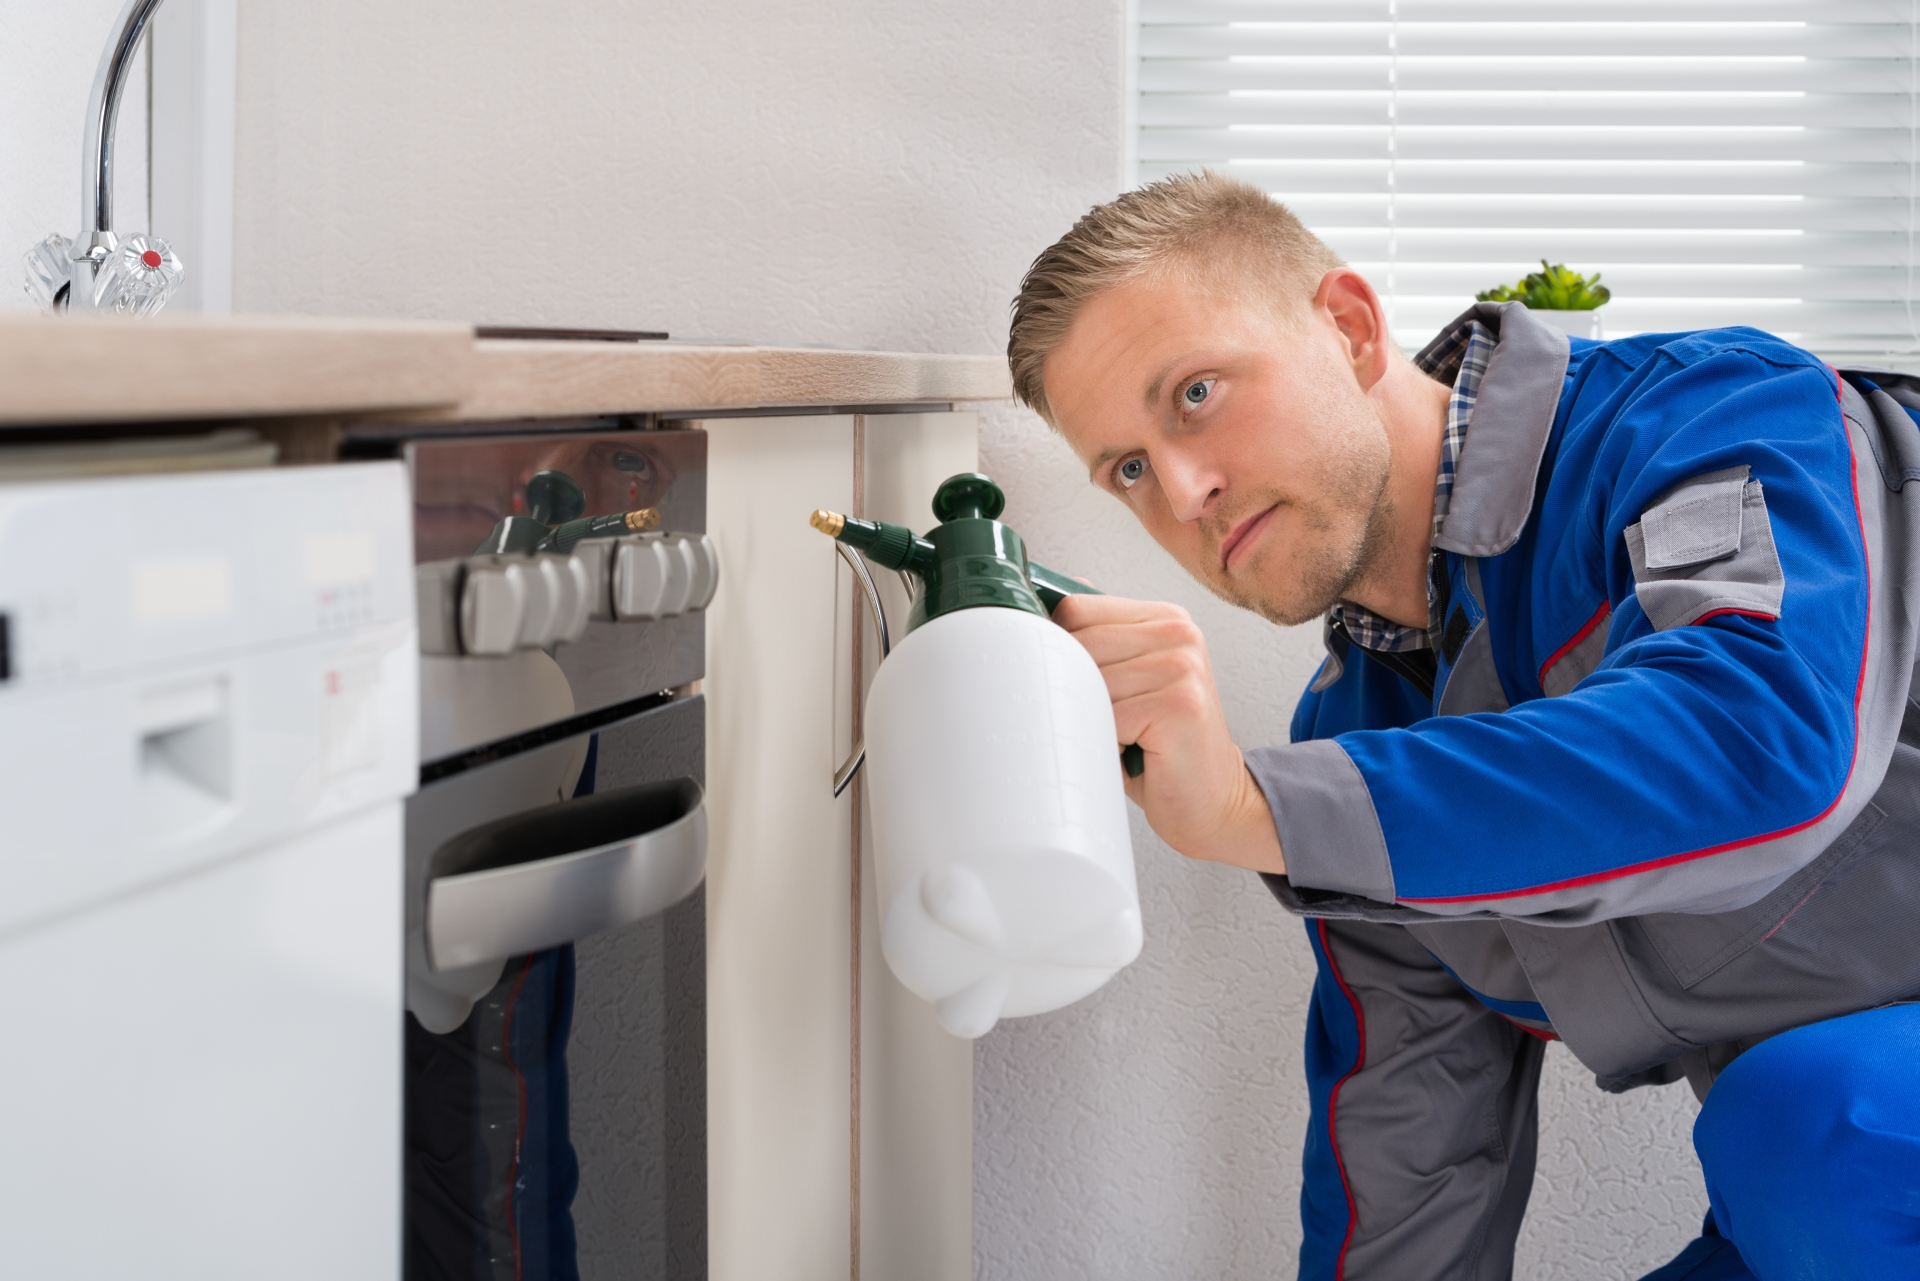 Pest Inspection, Pest Control in Orsett, Chafford Hundred, RM16. Call Now 020 8166 9746